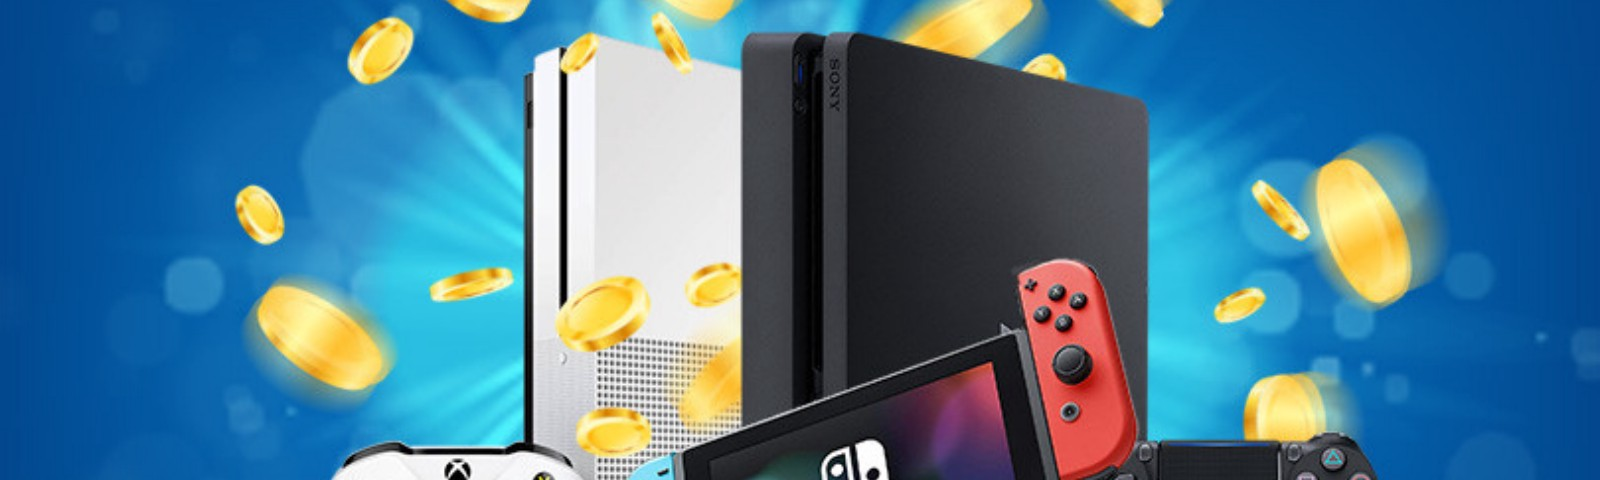 How to Buy Video Games for Cheap | PCMag com